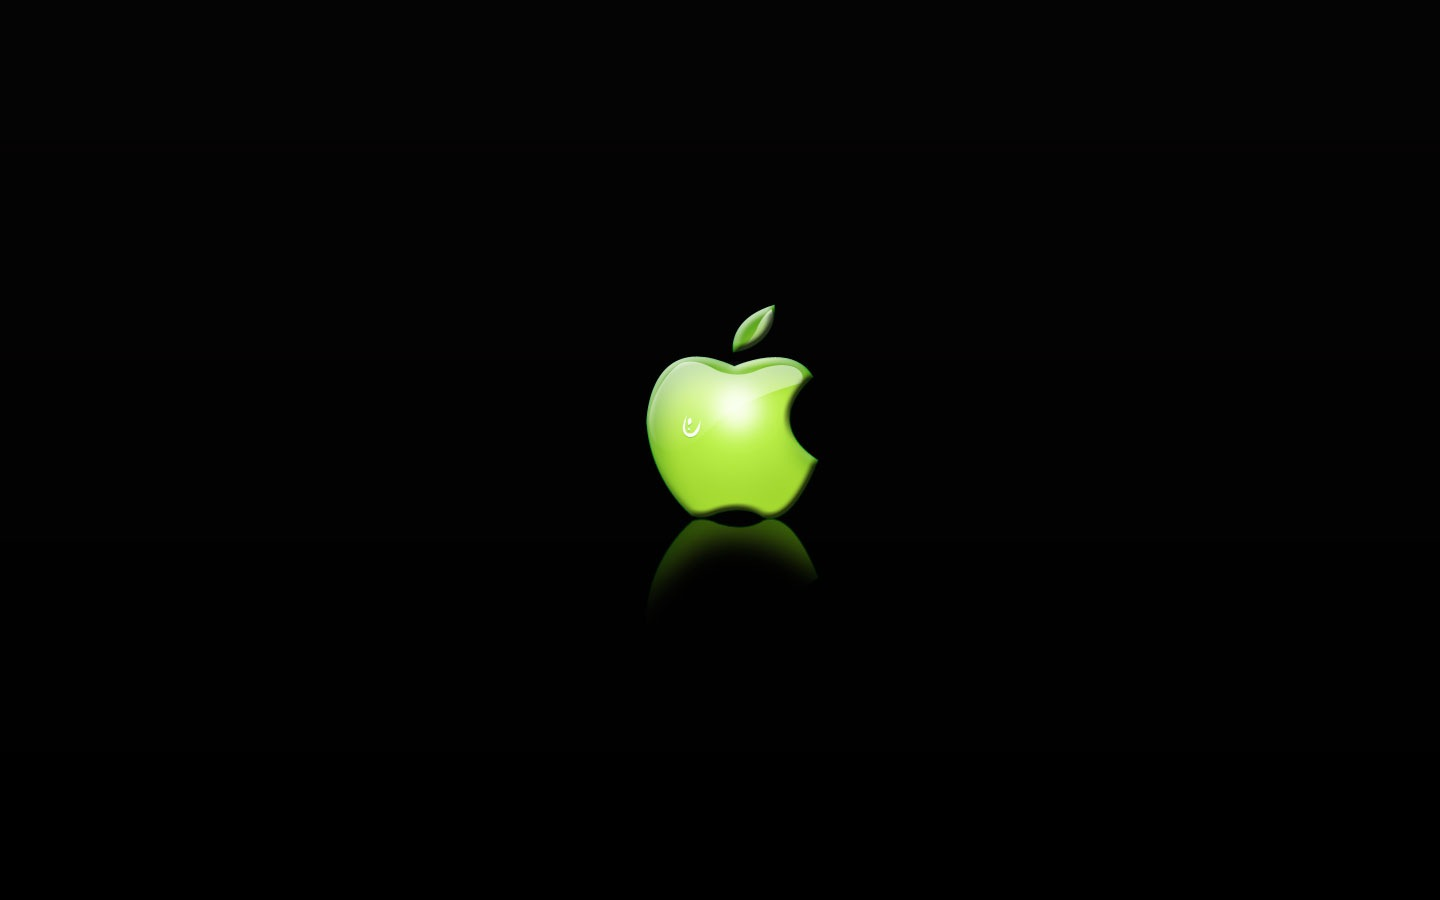 mac hd wallpaper